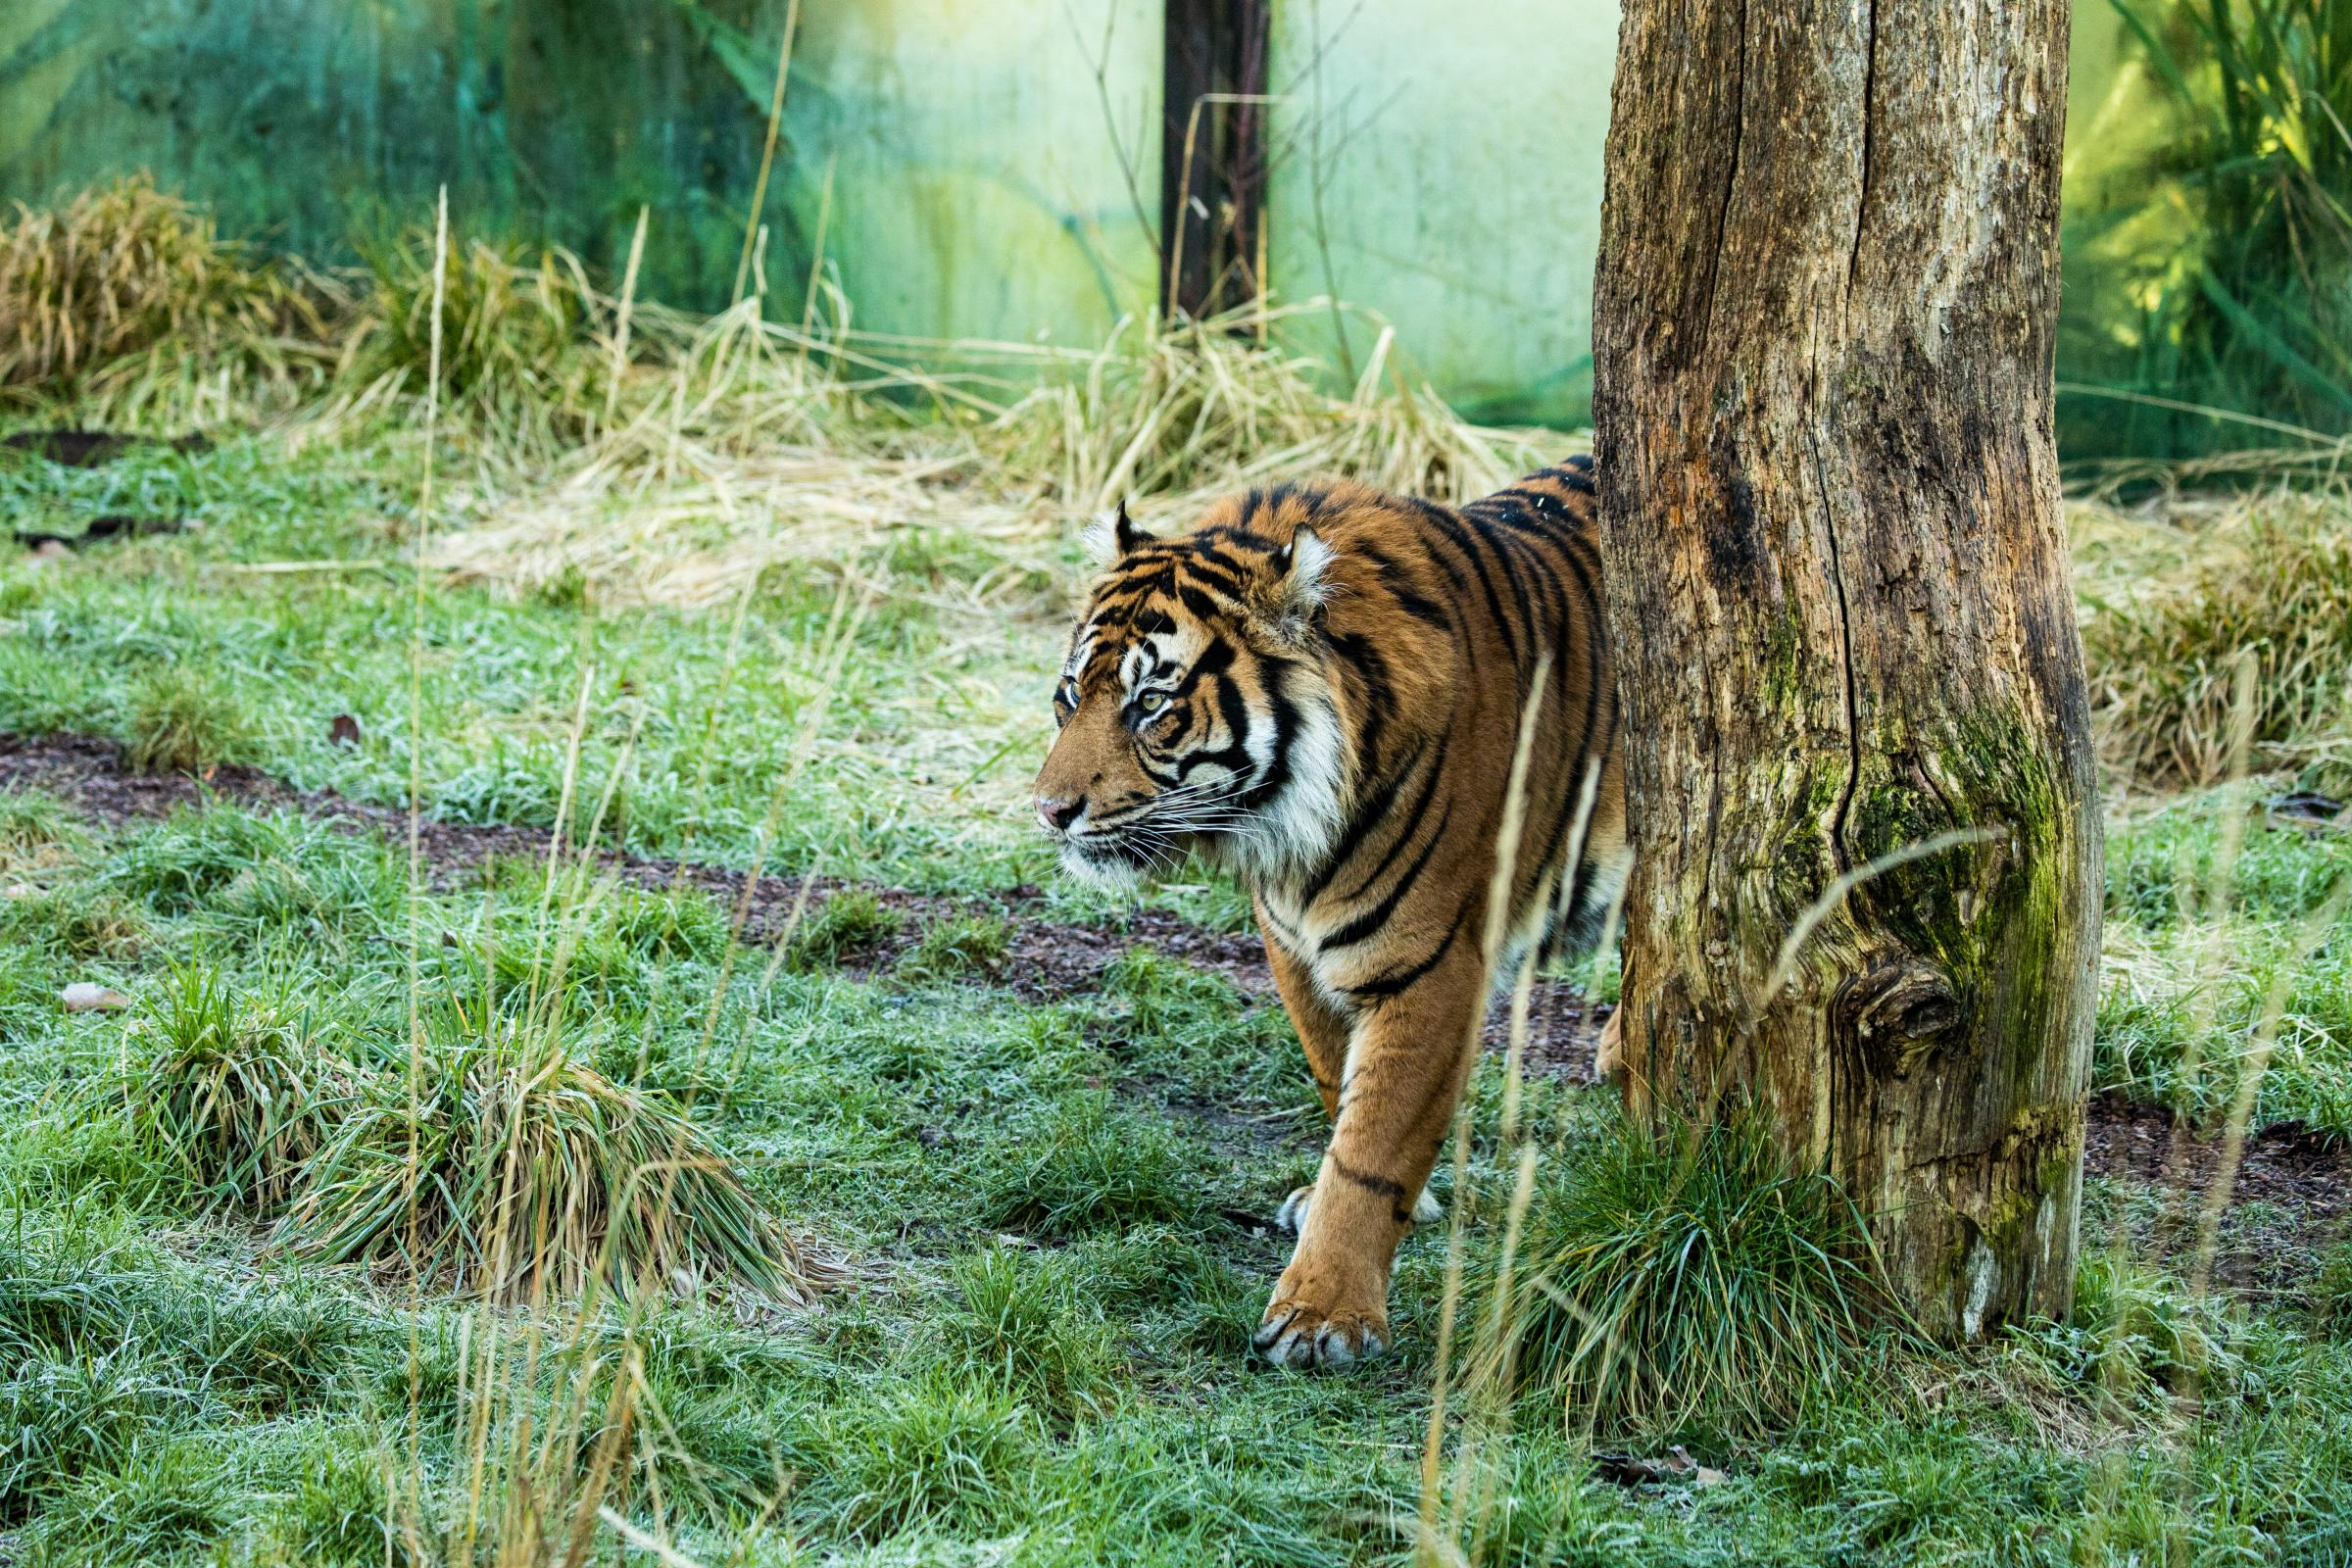 New Sumatran tiger arrives at London Zoo